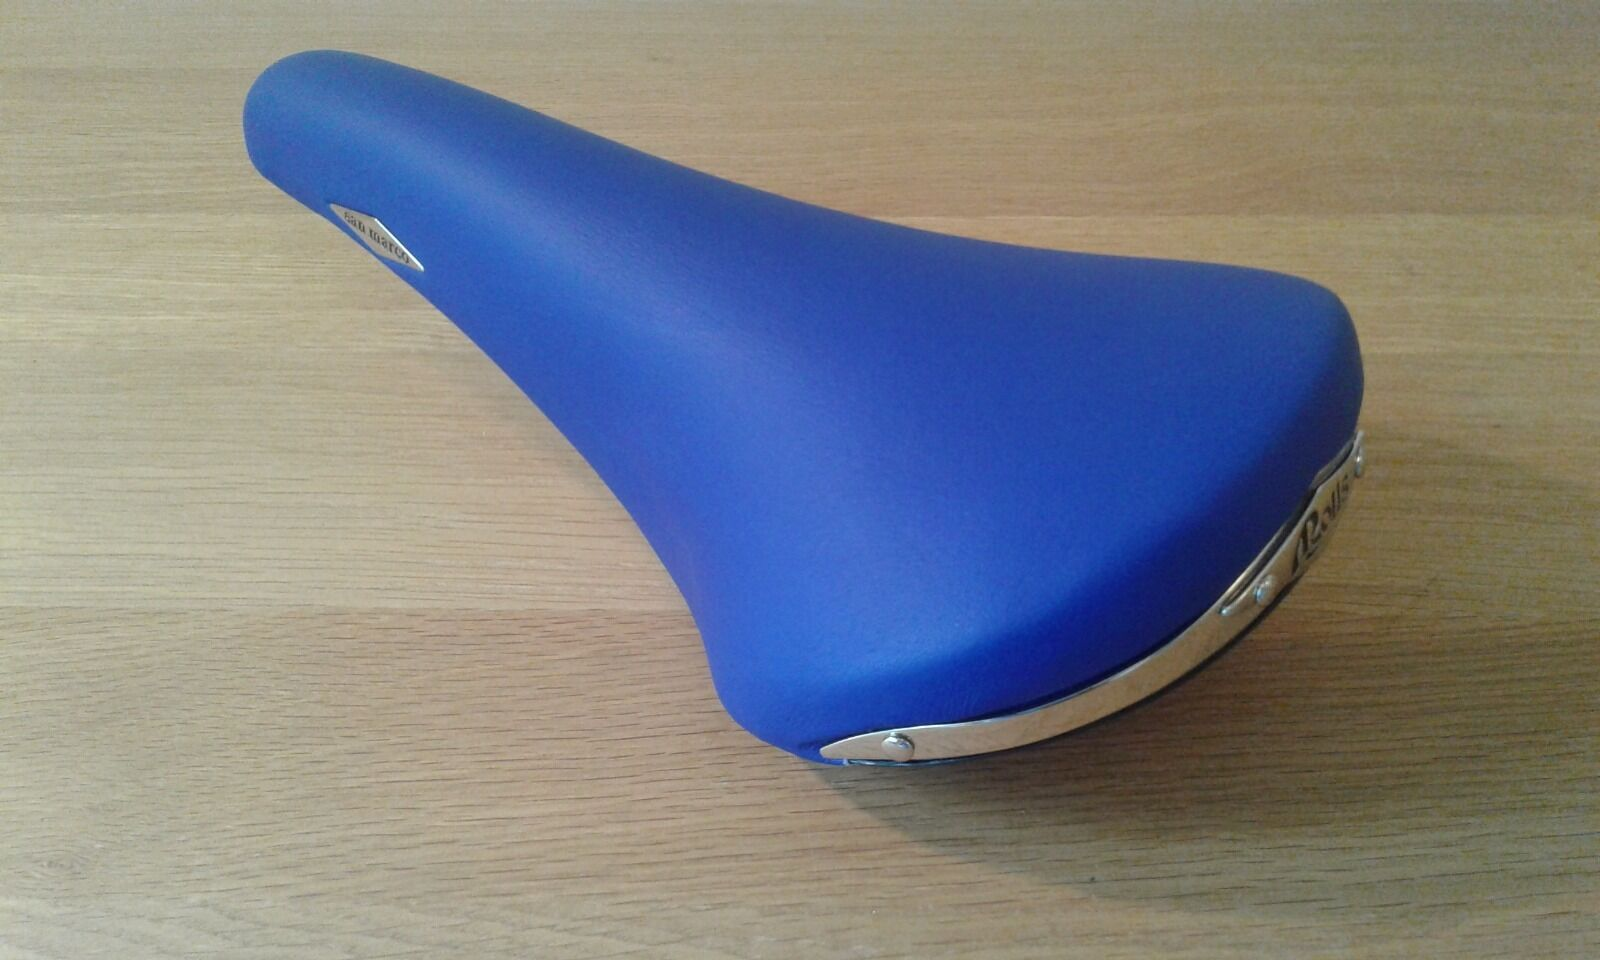 New  NOS San Marco Rolls blueee microfeel limited edition saddle Eroica  free shipping worldwide